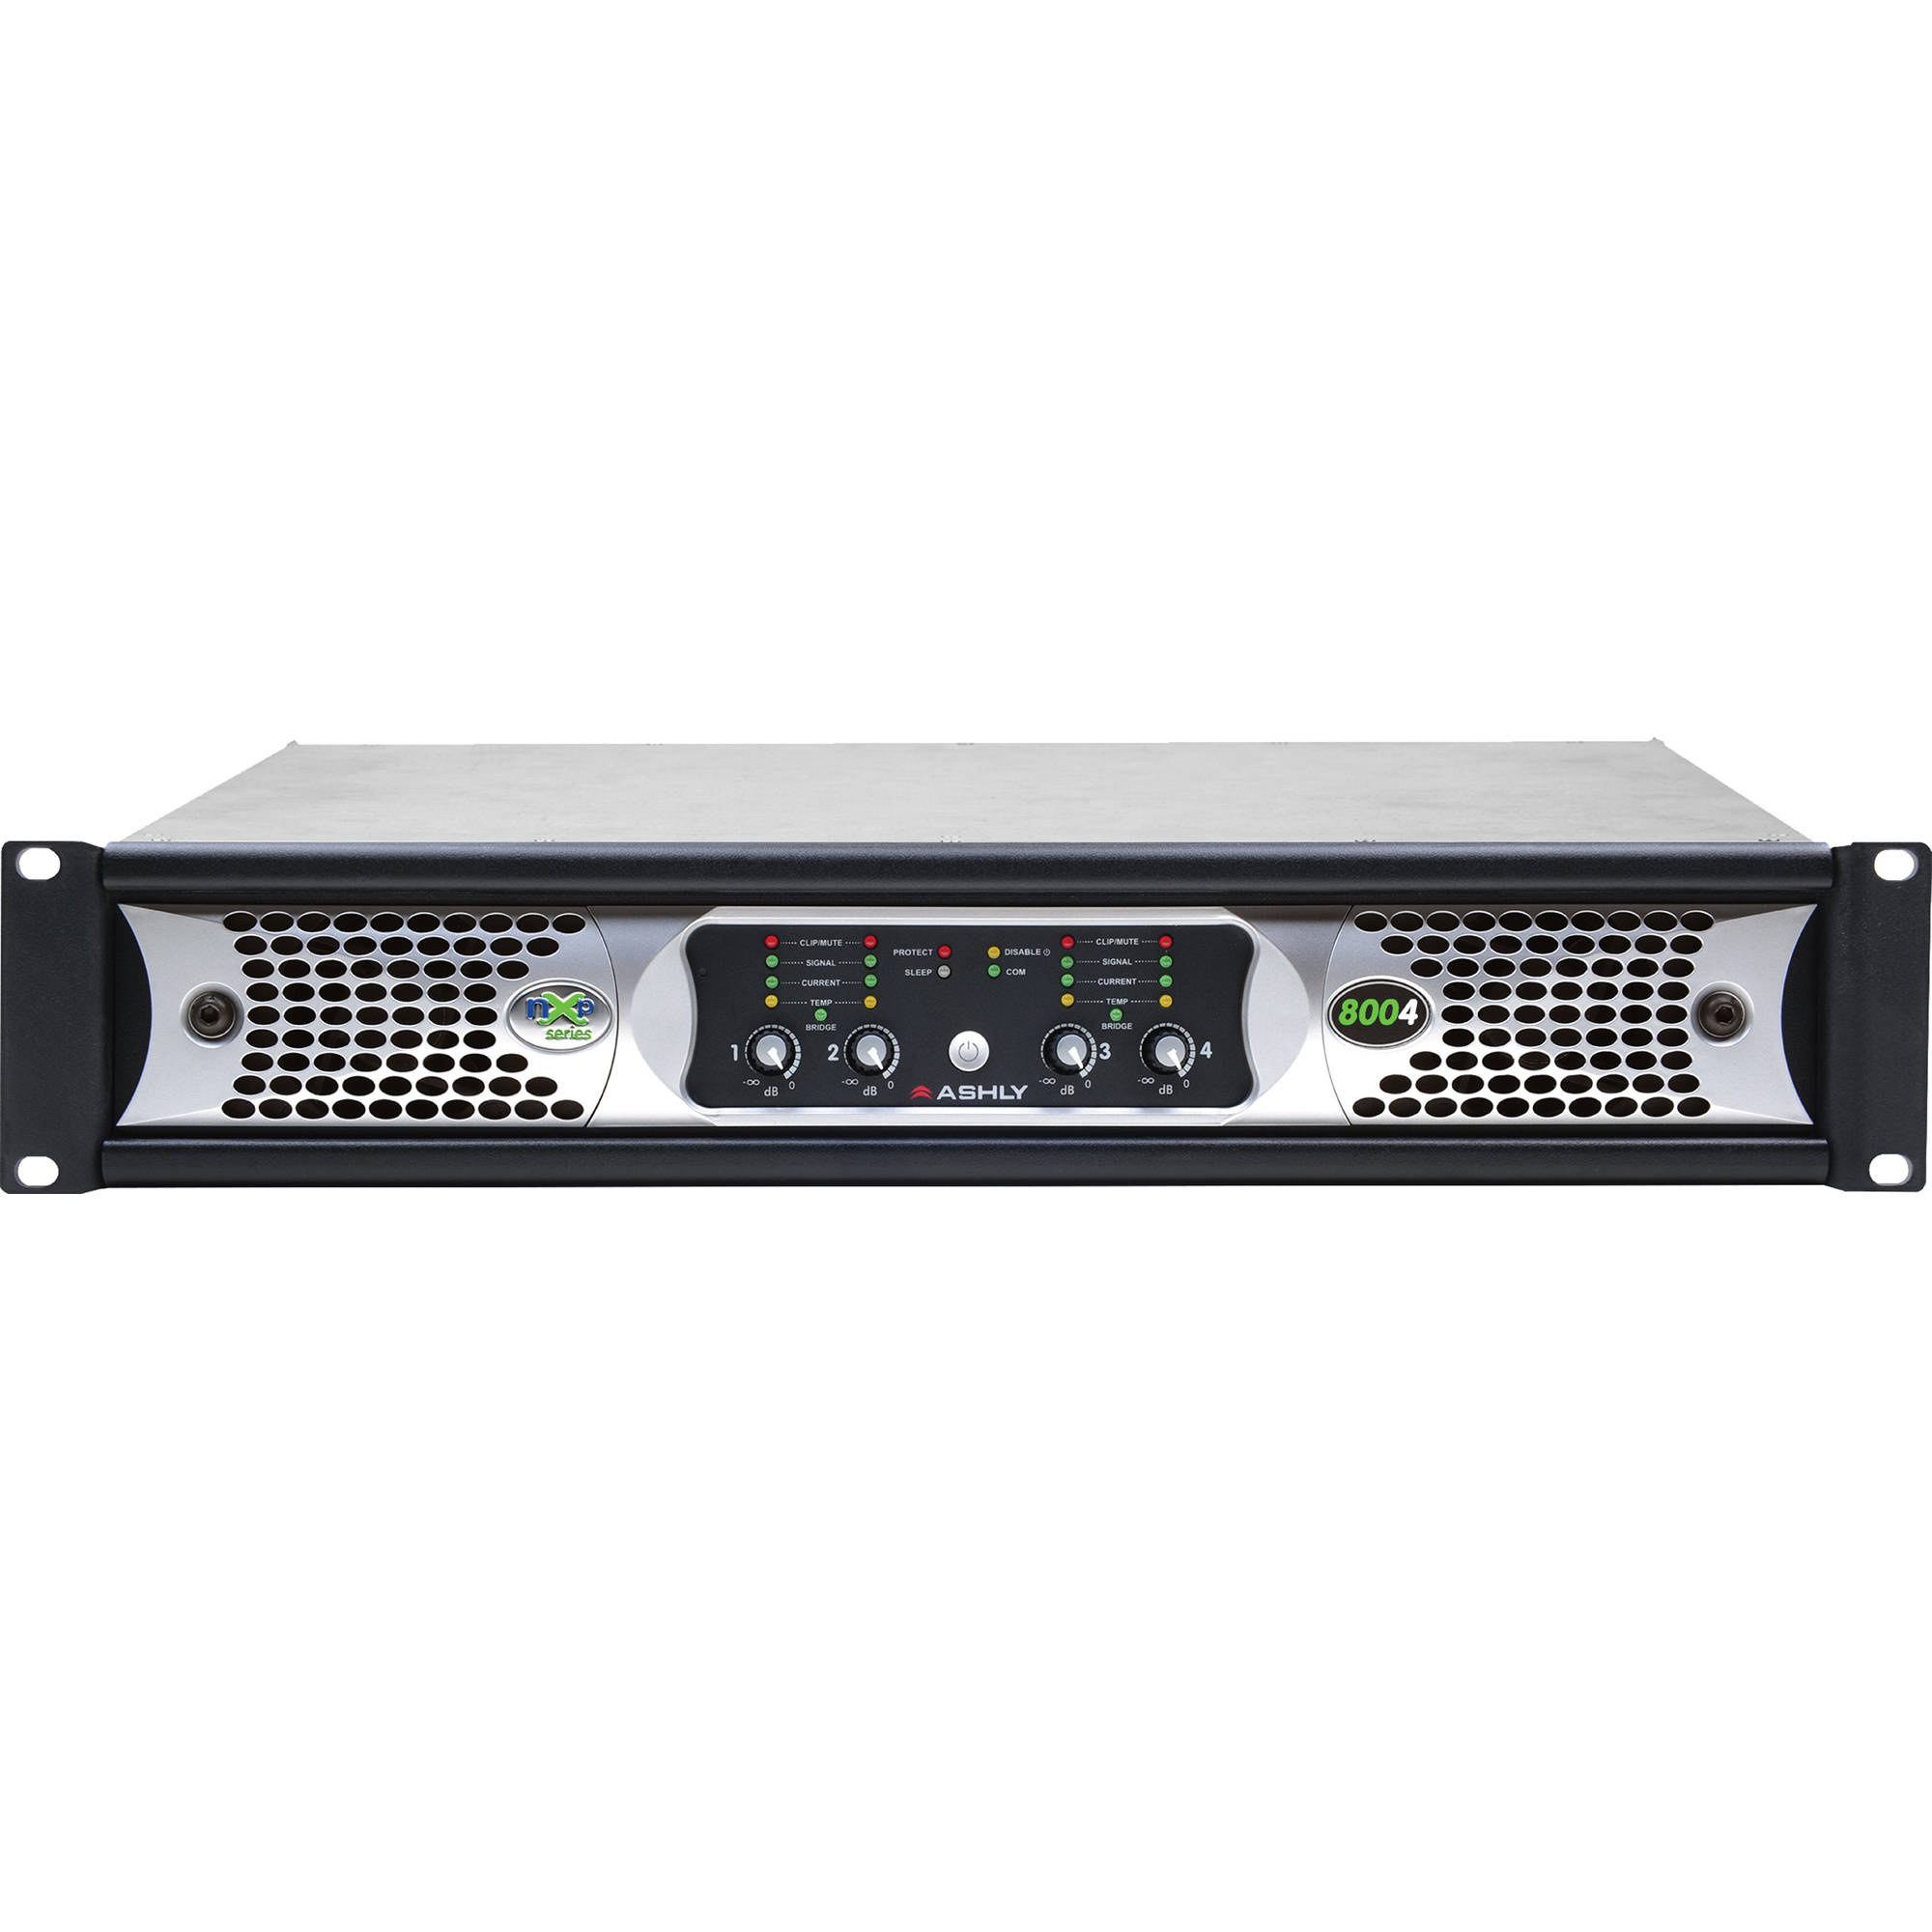 Ashly Nxp Series Nxp8004 4 Channel 800w Power Amplifier Circuitgreen Actual Circuit Red Linkwitzriley Crossover With Programmable Outputs Protea Software